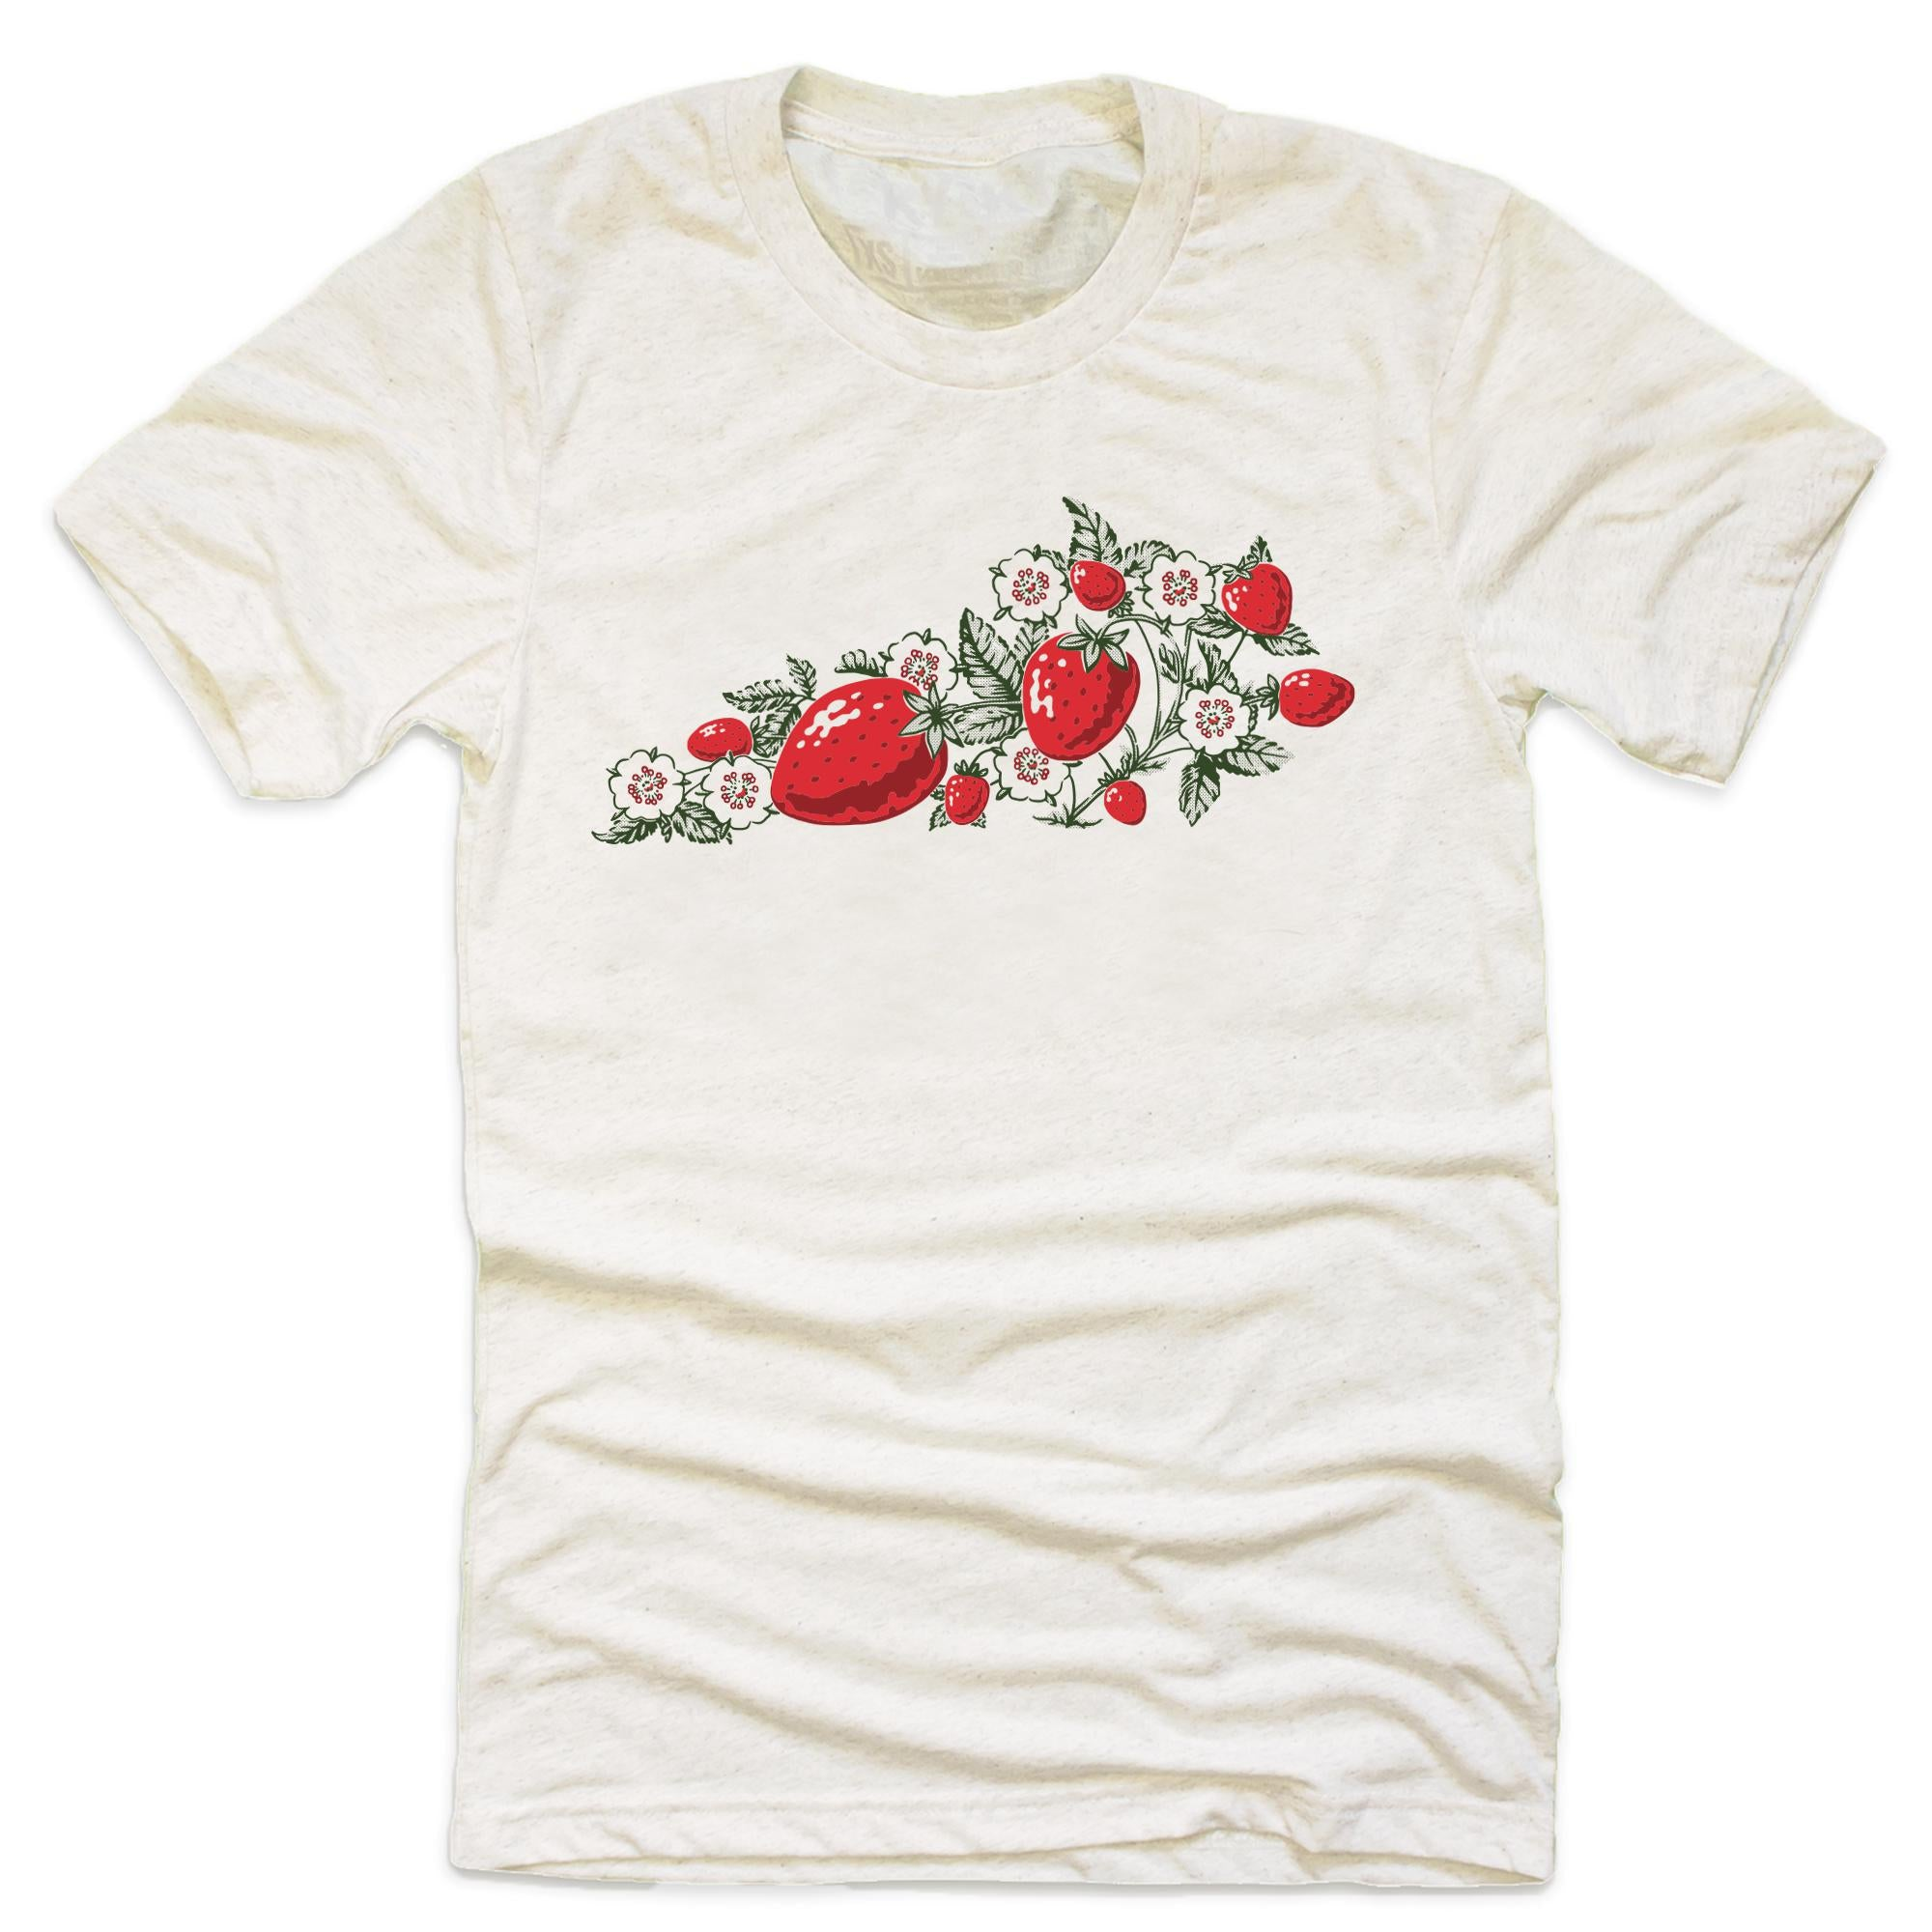 Strawberry KY T-Shirt